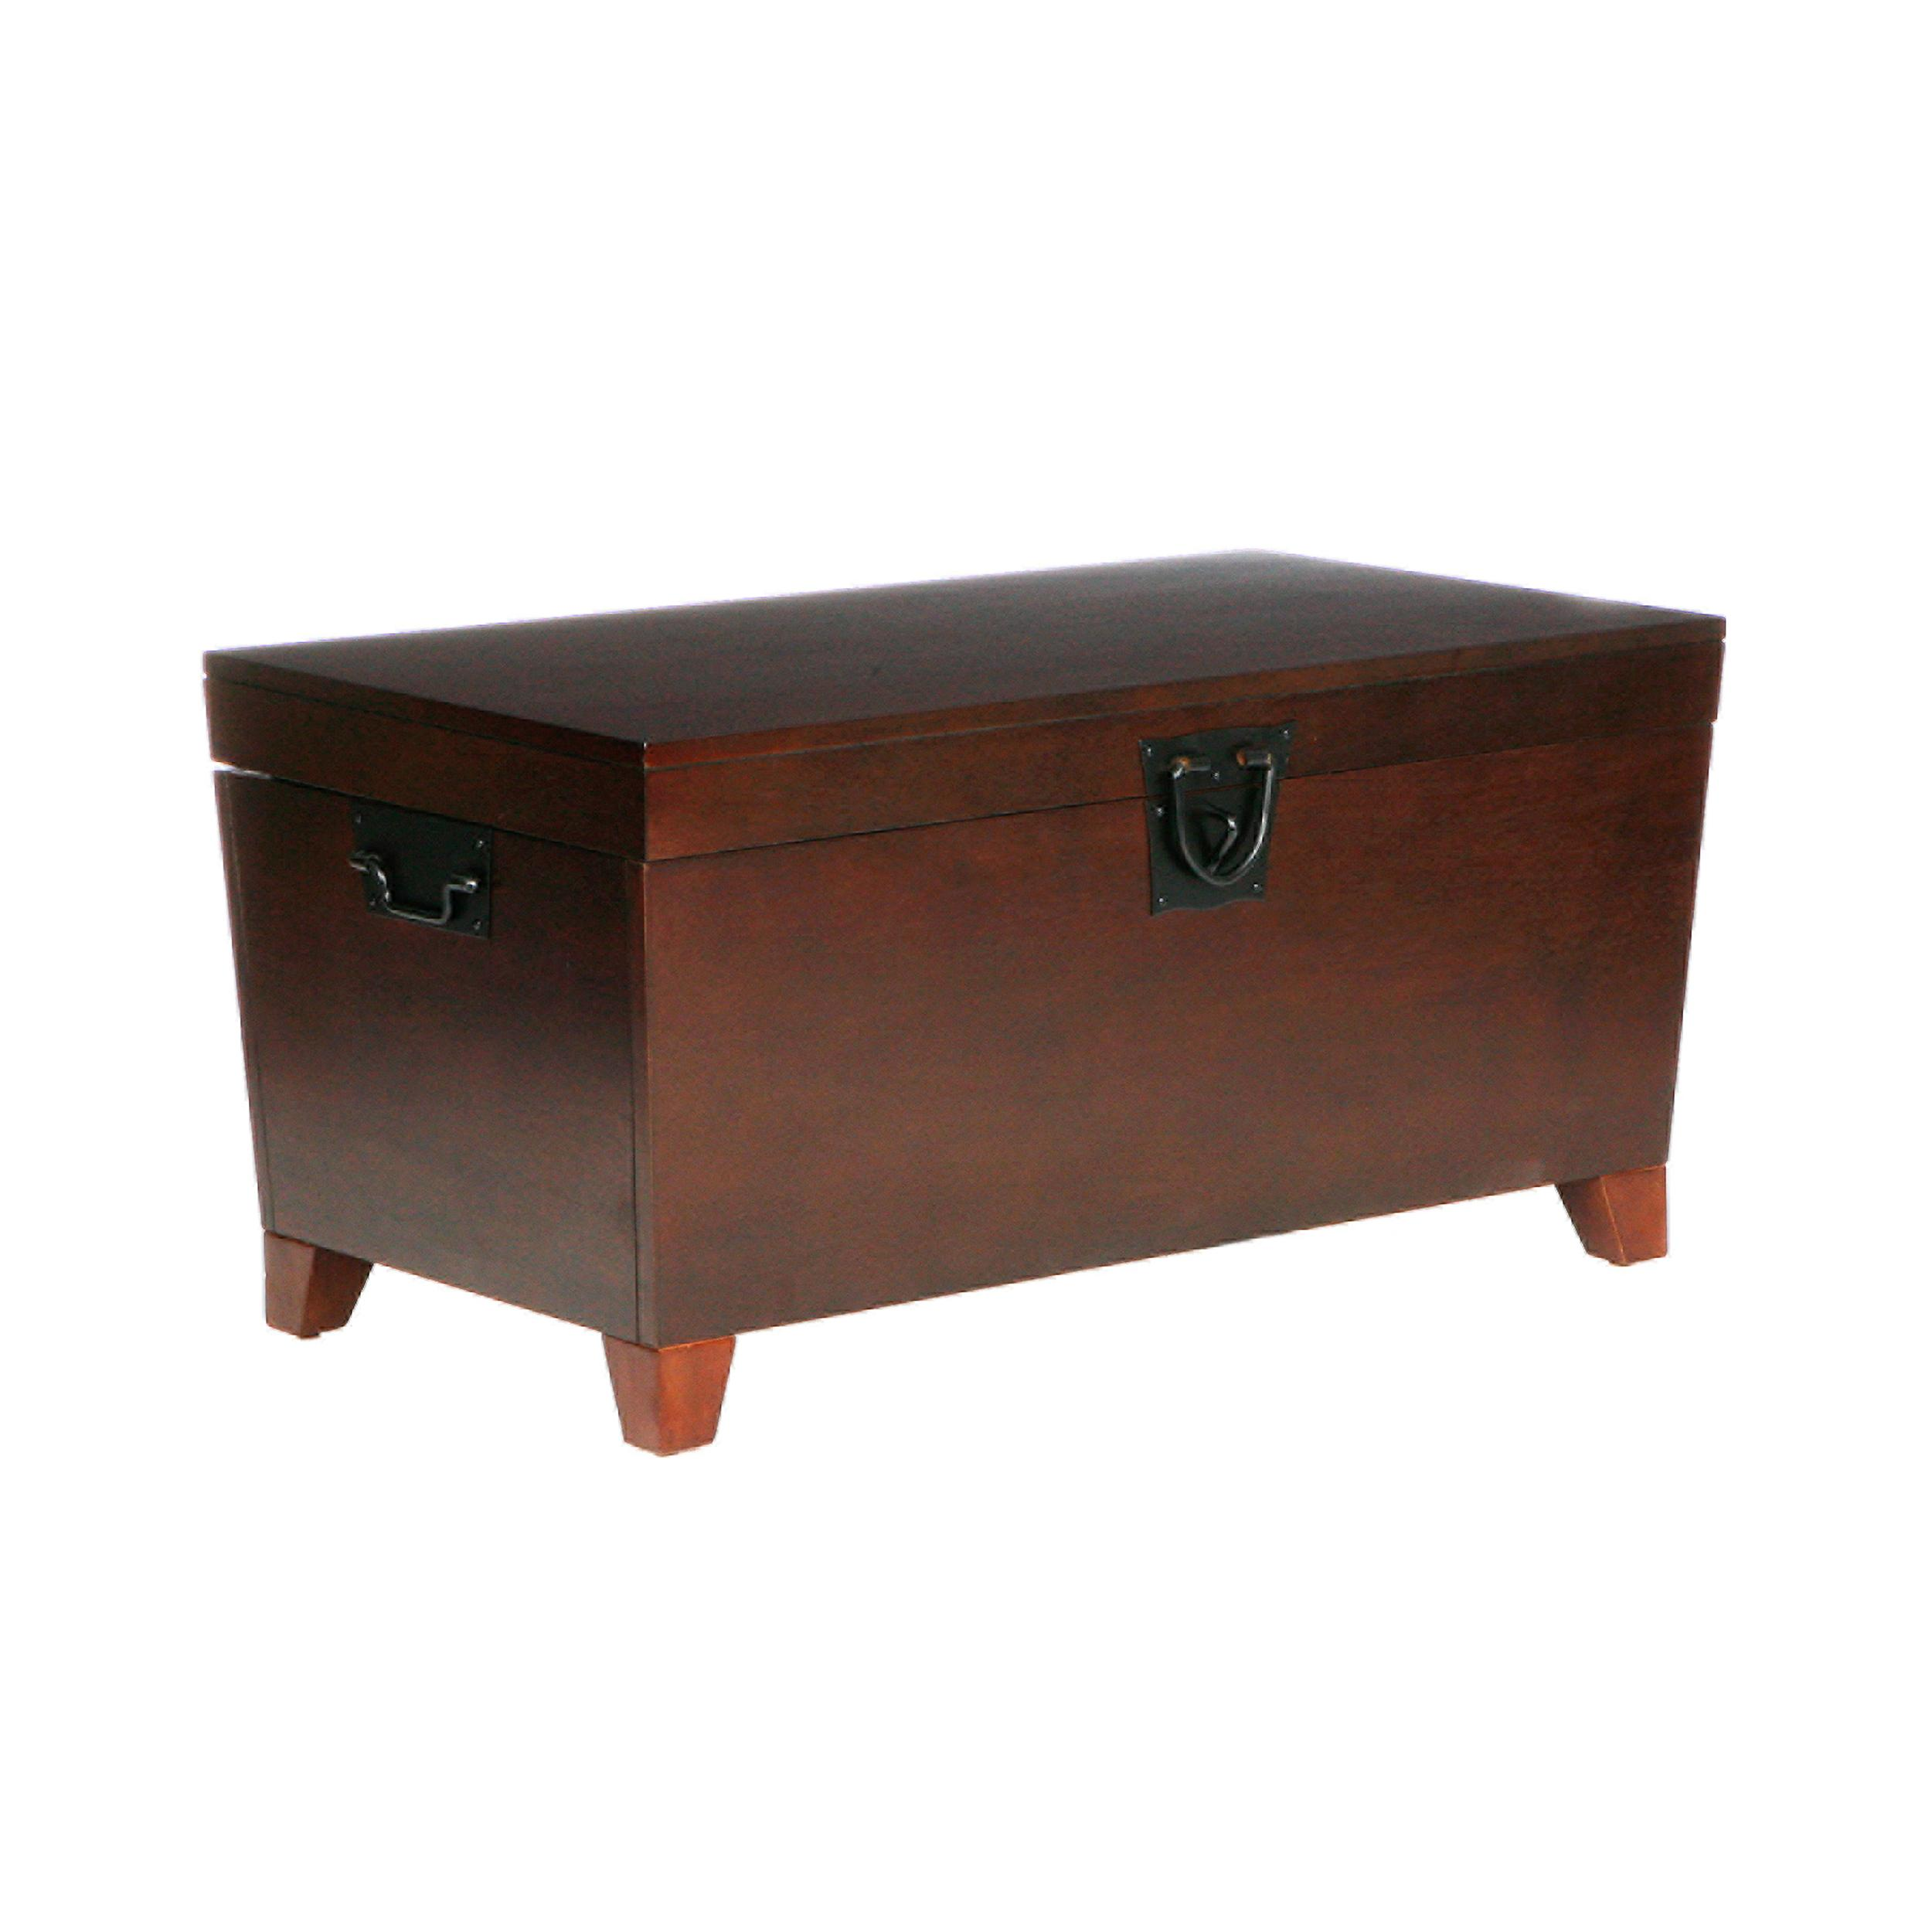 Espresso Coffee Table With Storage: Amazon.com: Southern Enterprises Pyramid Storage Trunk